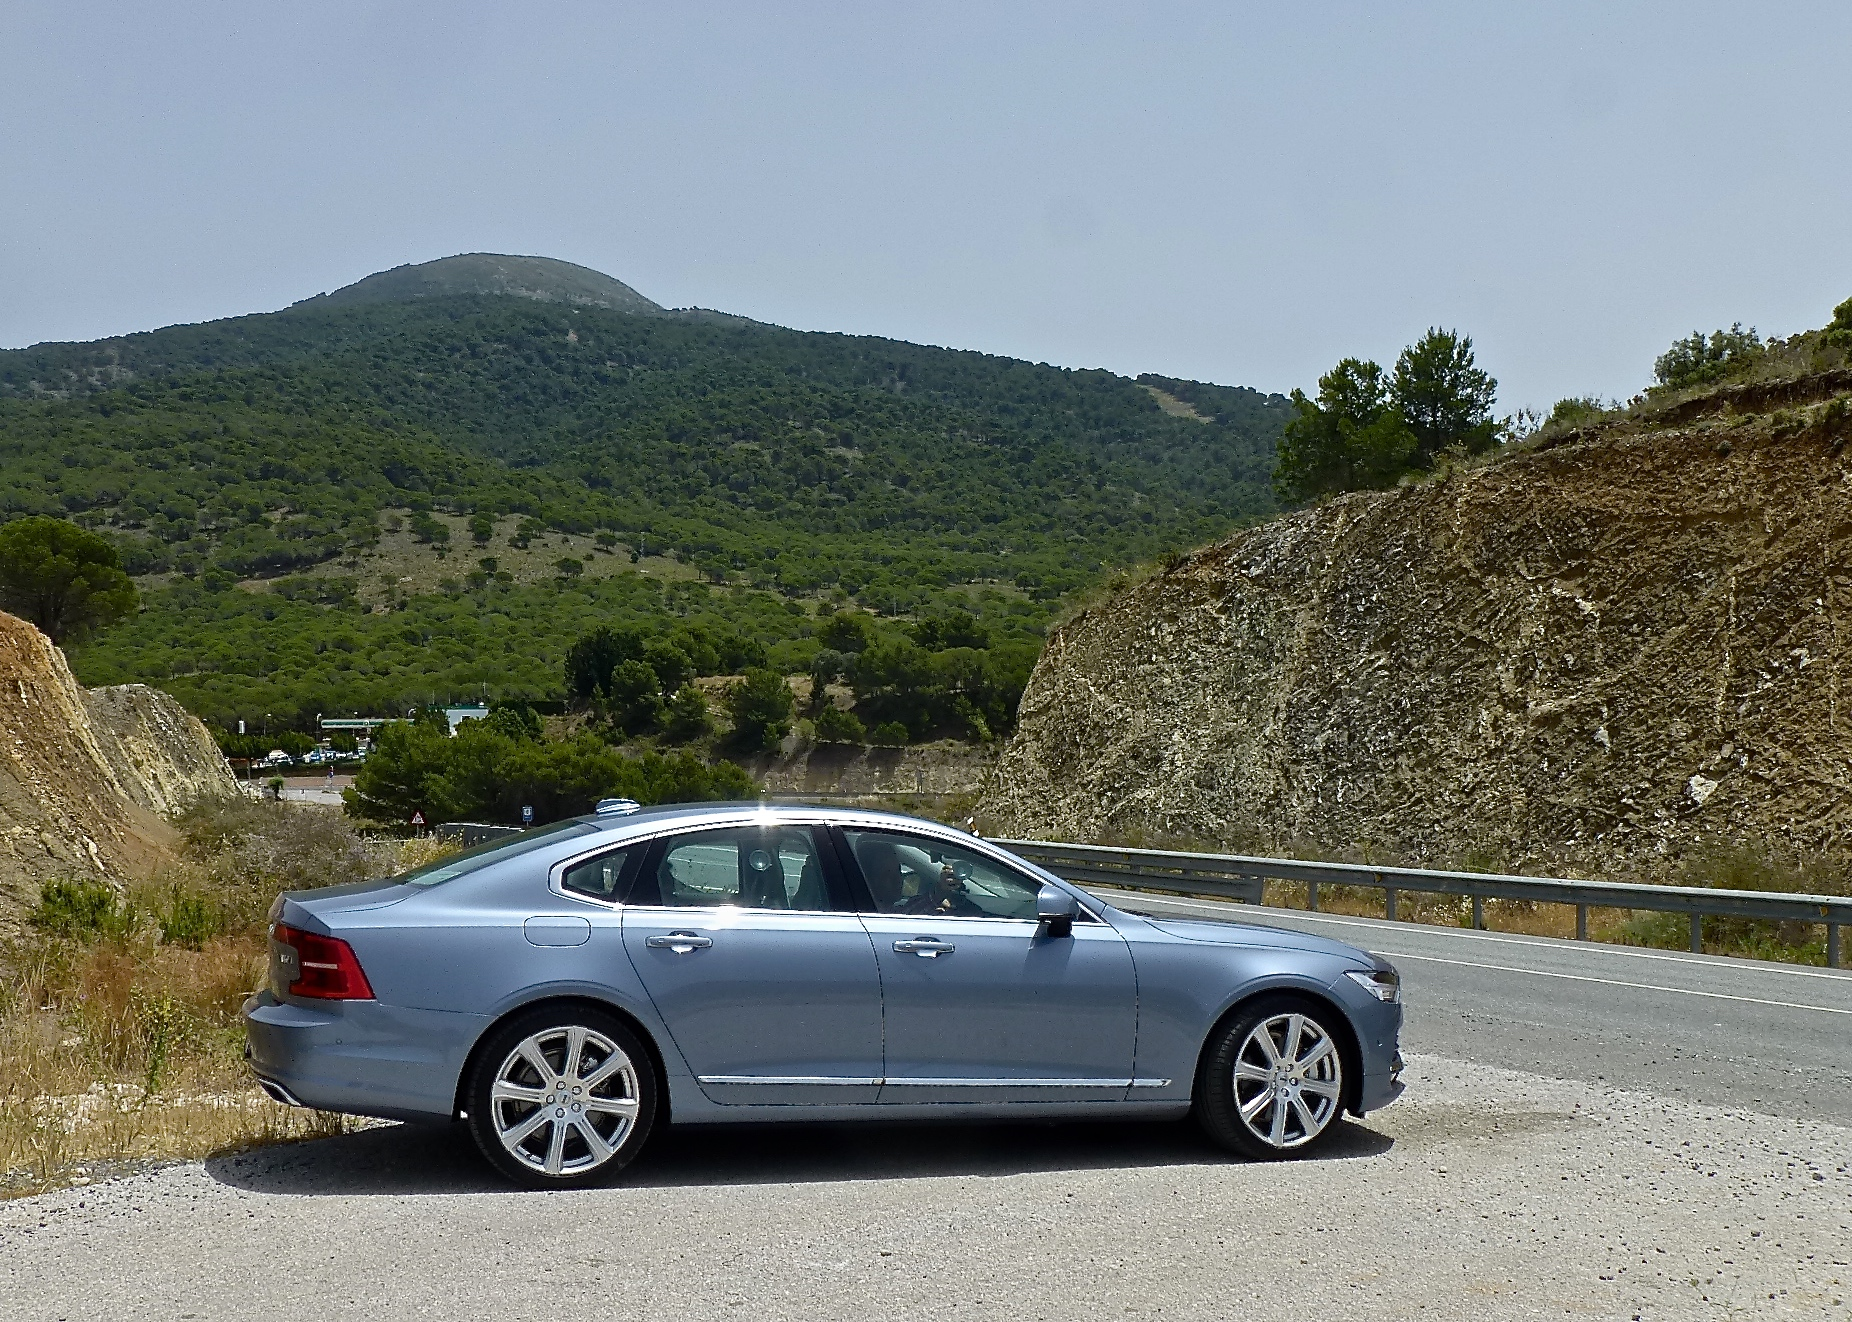 The Volvo S90 was as impressive when driven through the Spanish countryside as on city streets.